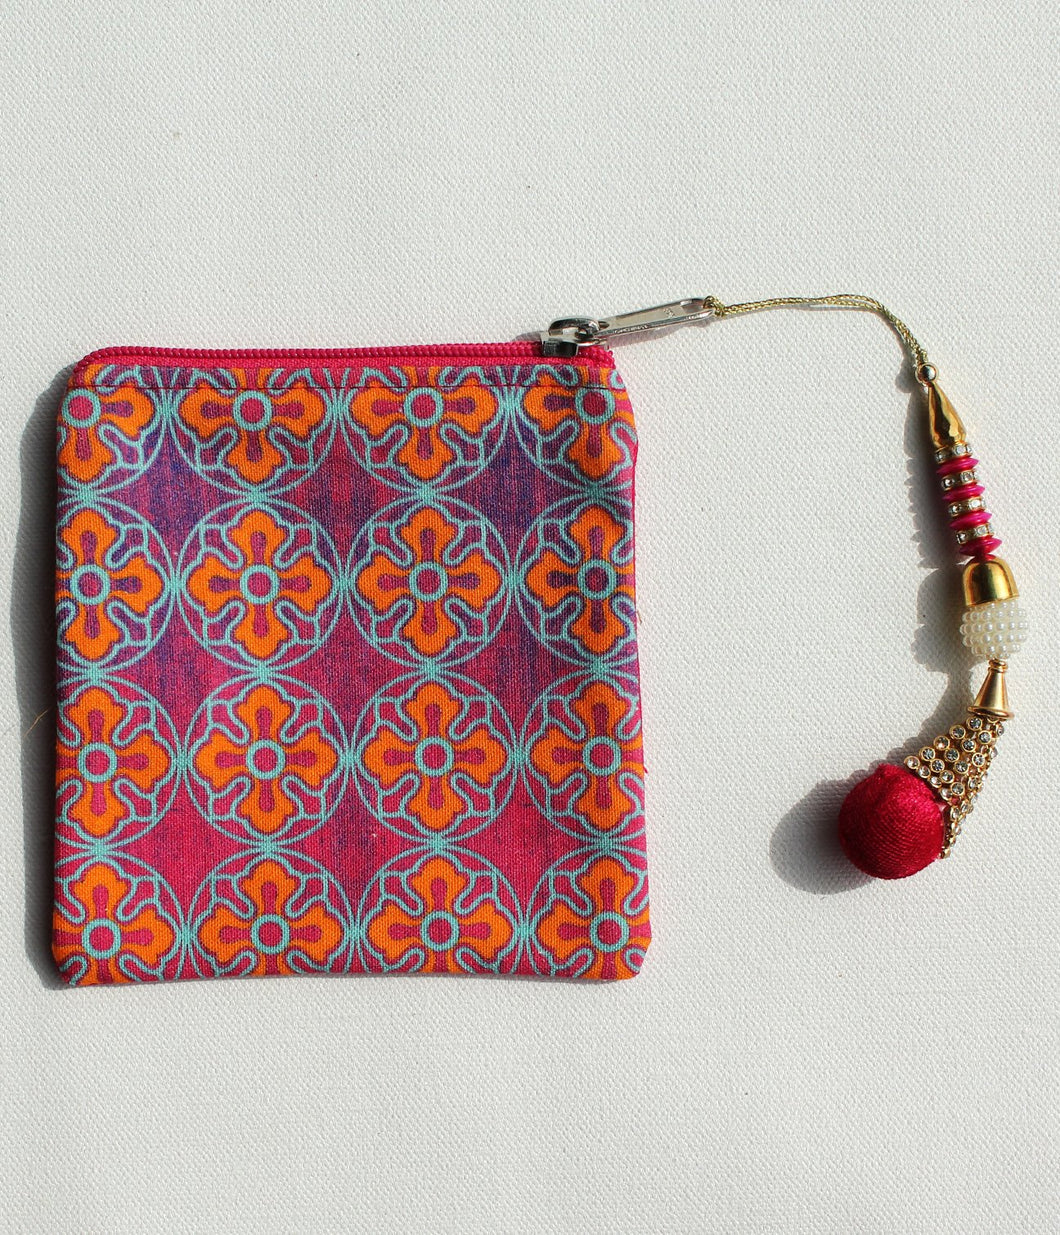 Delightful Flower Motif Coin Pouch